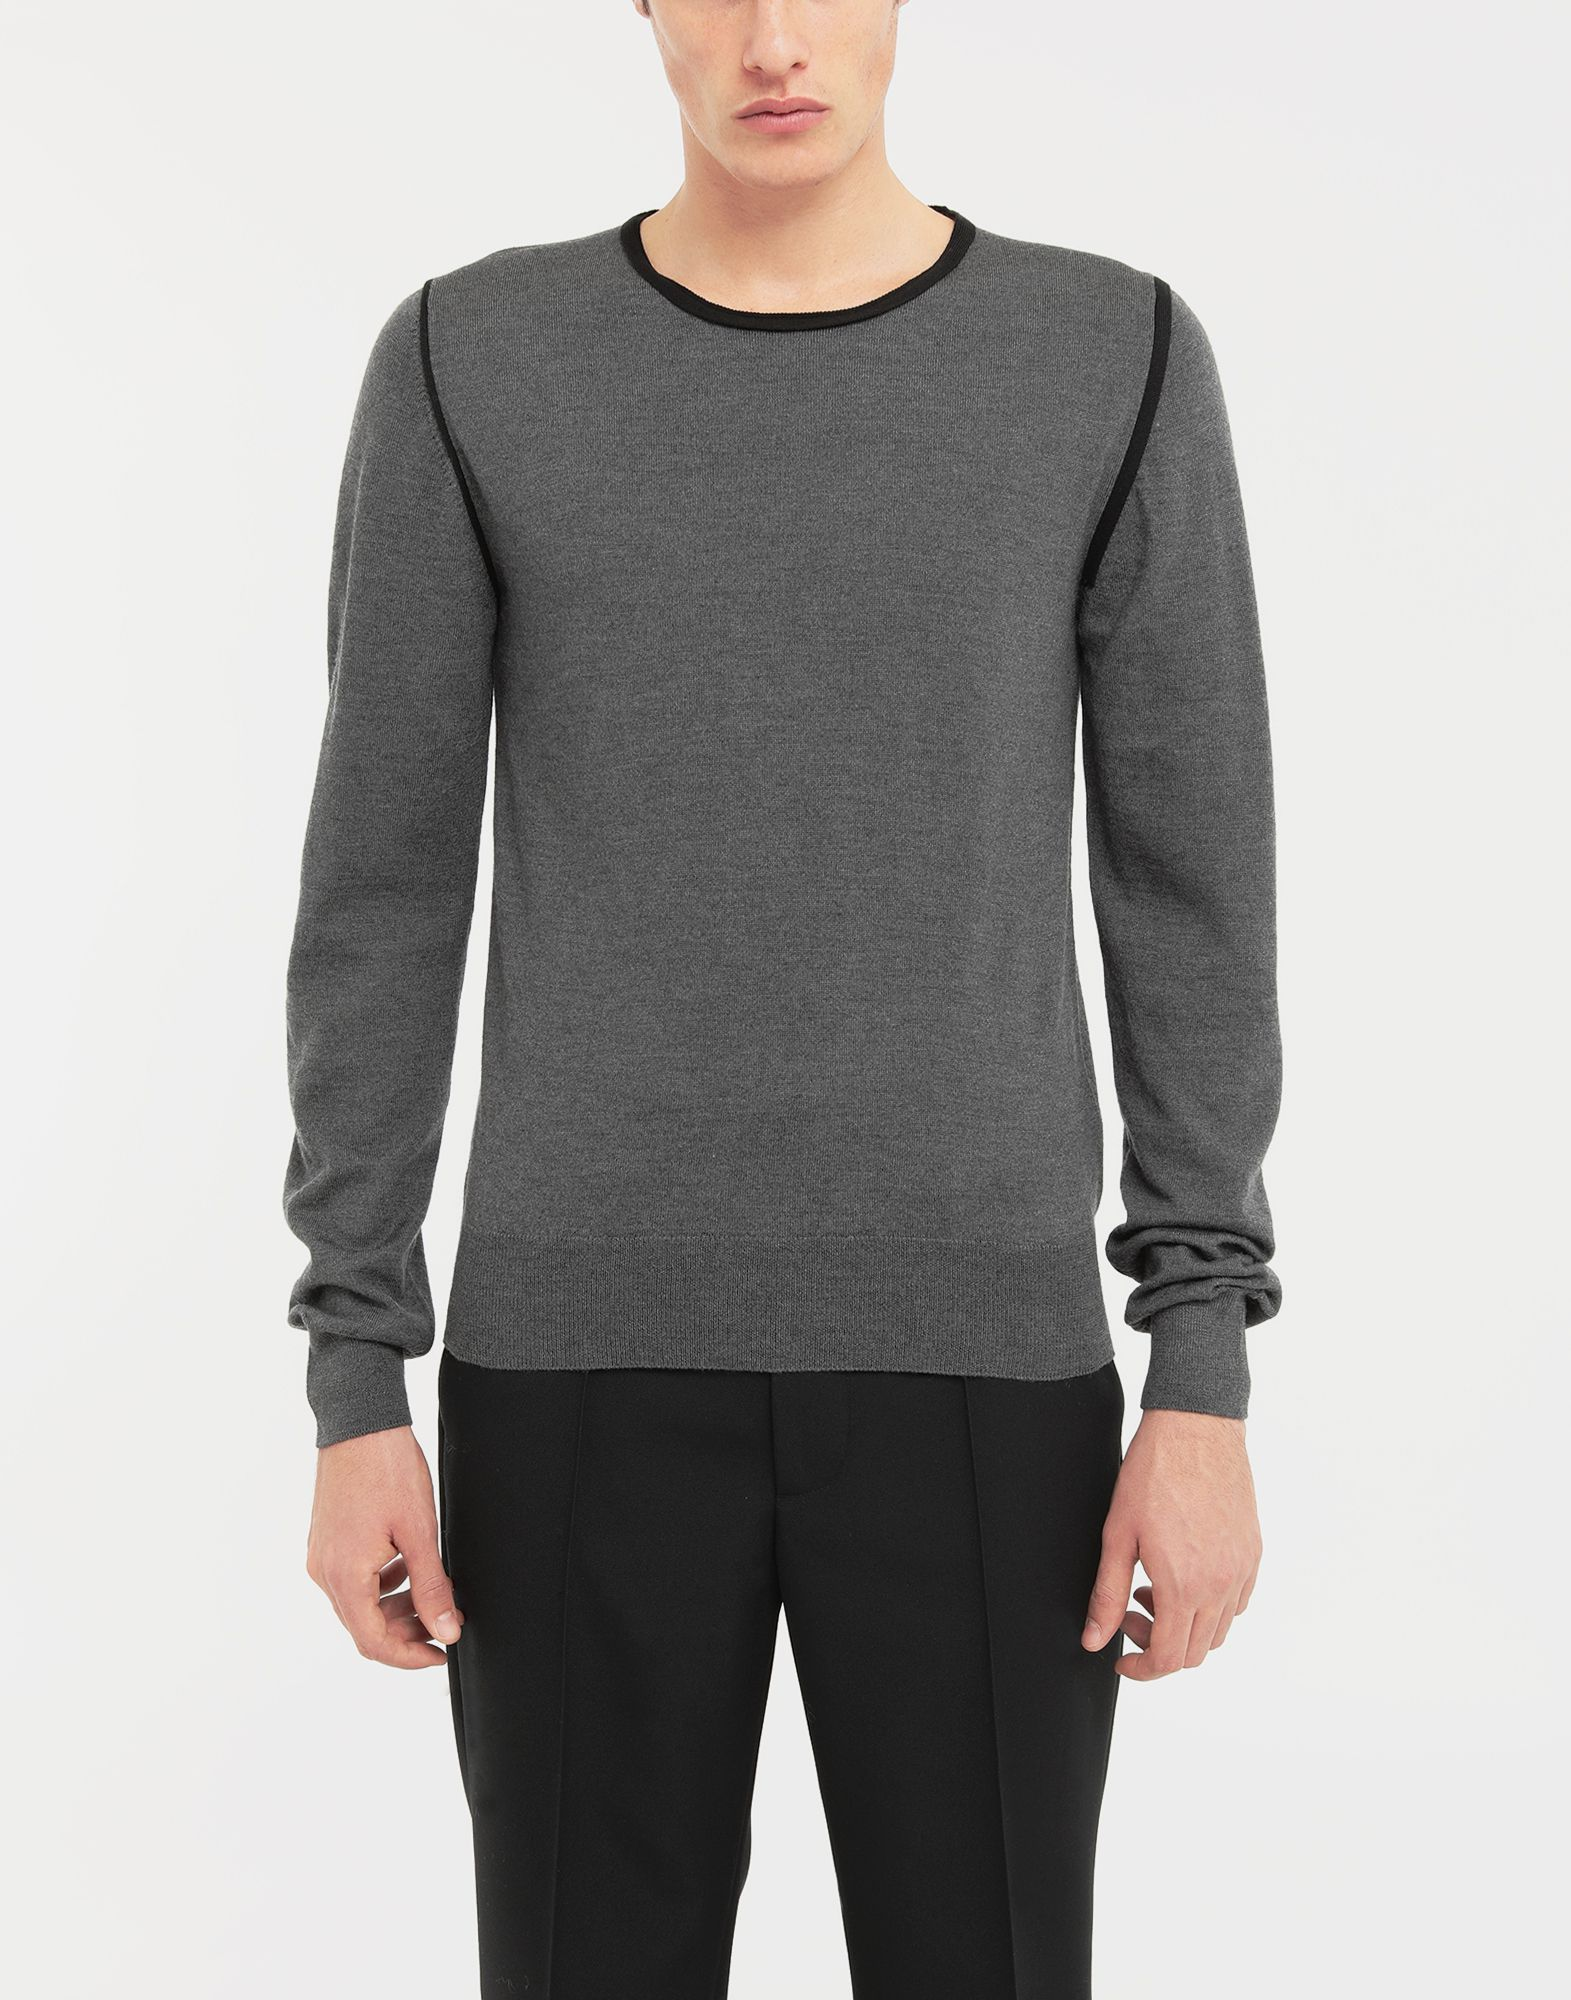 MAISON MARGIELA Cotton-trimmed knit jersey pullover Crewneck sweater Man r